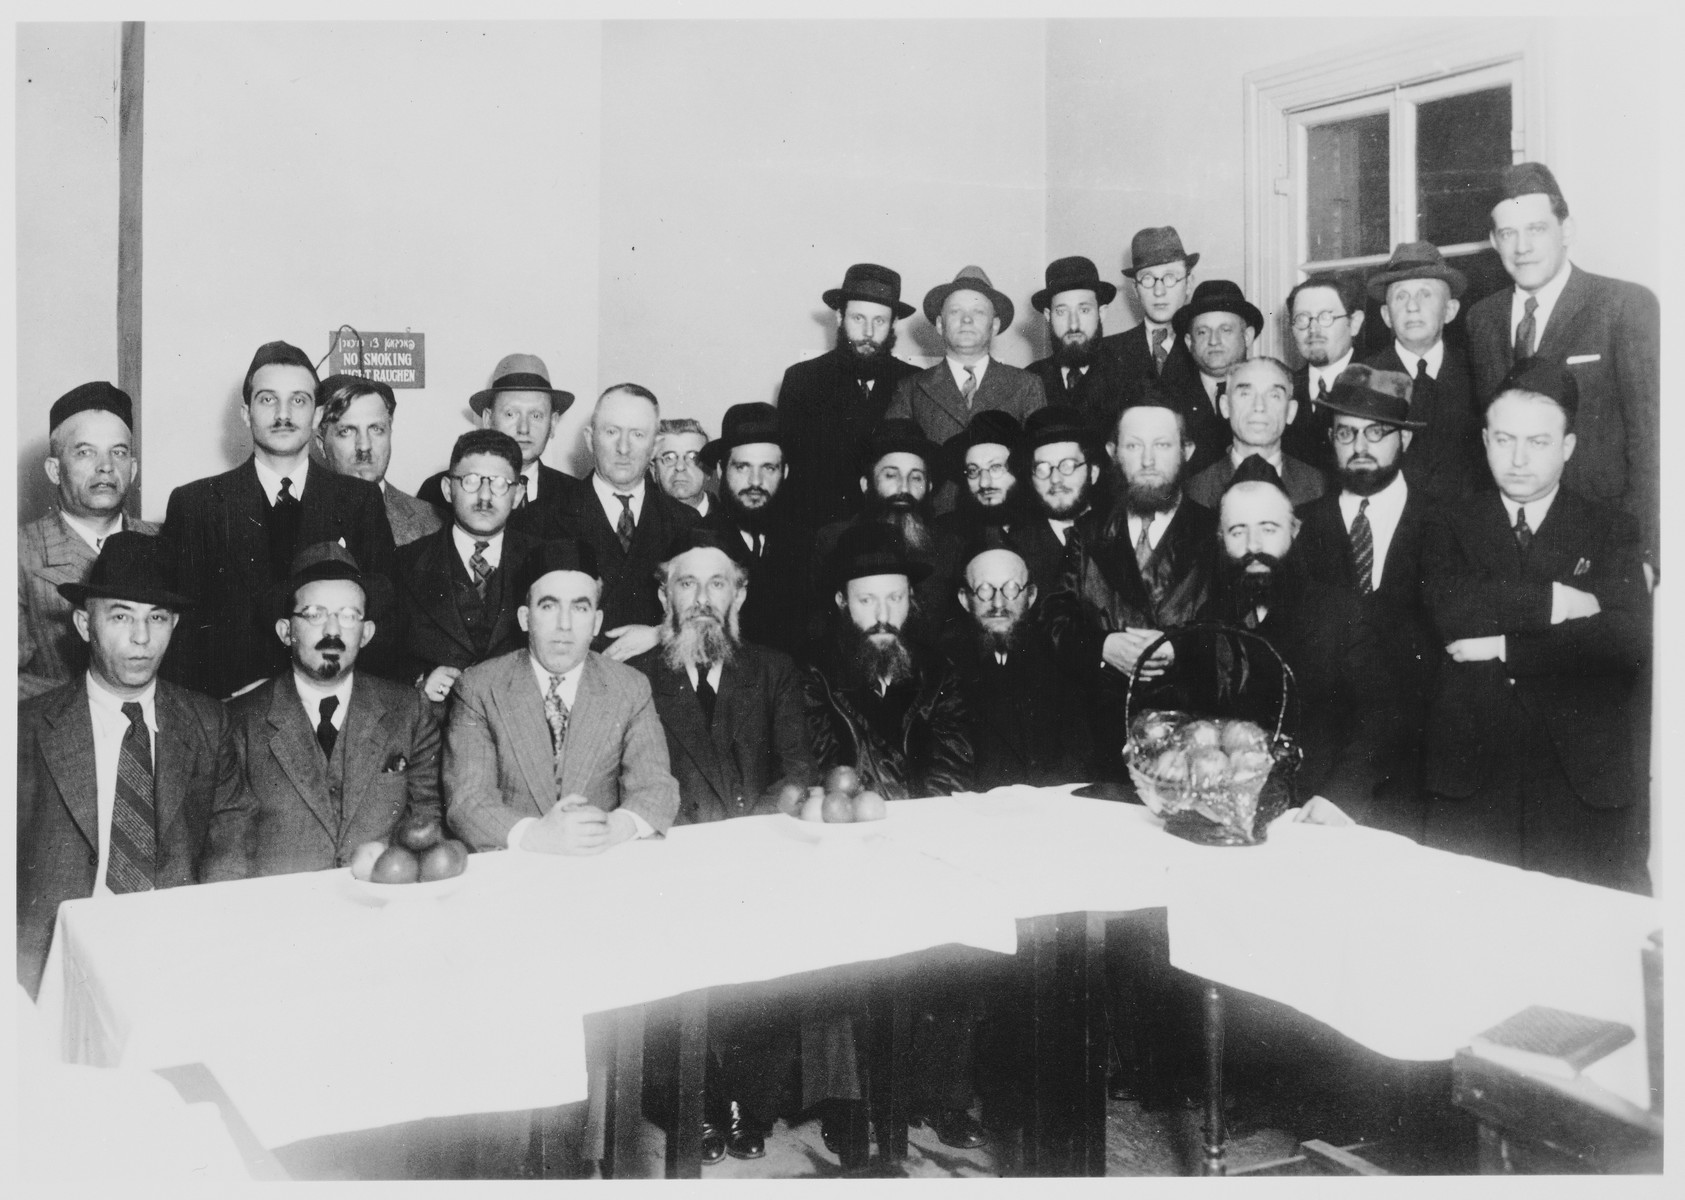 Group portrait taken of Jewish emigres, and religious Jewish refugees  who escaped from Europe with visas signed by Chiune Sugihara, in Kobe, Japan.  Joseph Ganger is seated in the first row third from the left.  Rabbi Shmuel Dovid Walkin is seated fifth from the left. Standing on the far left is Solomon Stolowy.  In the back corner, second from the left is Hirsh Marinski, a business partner of the Stolowy family.